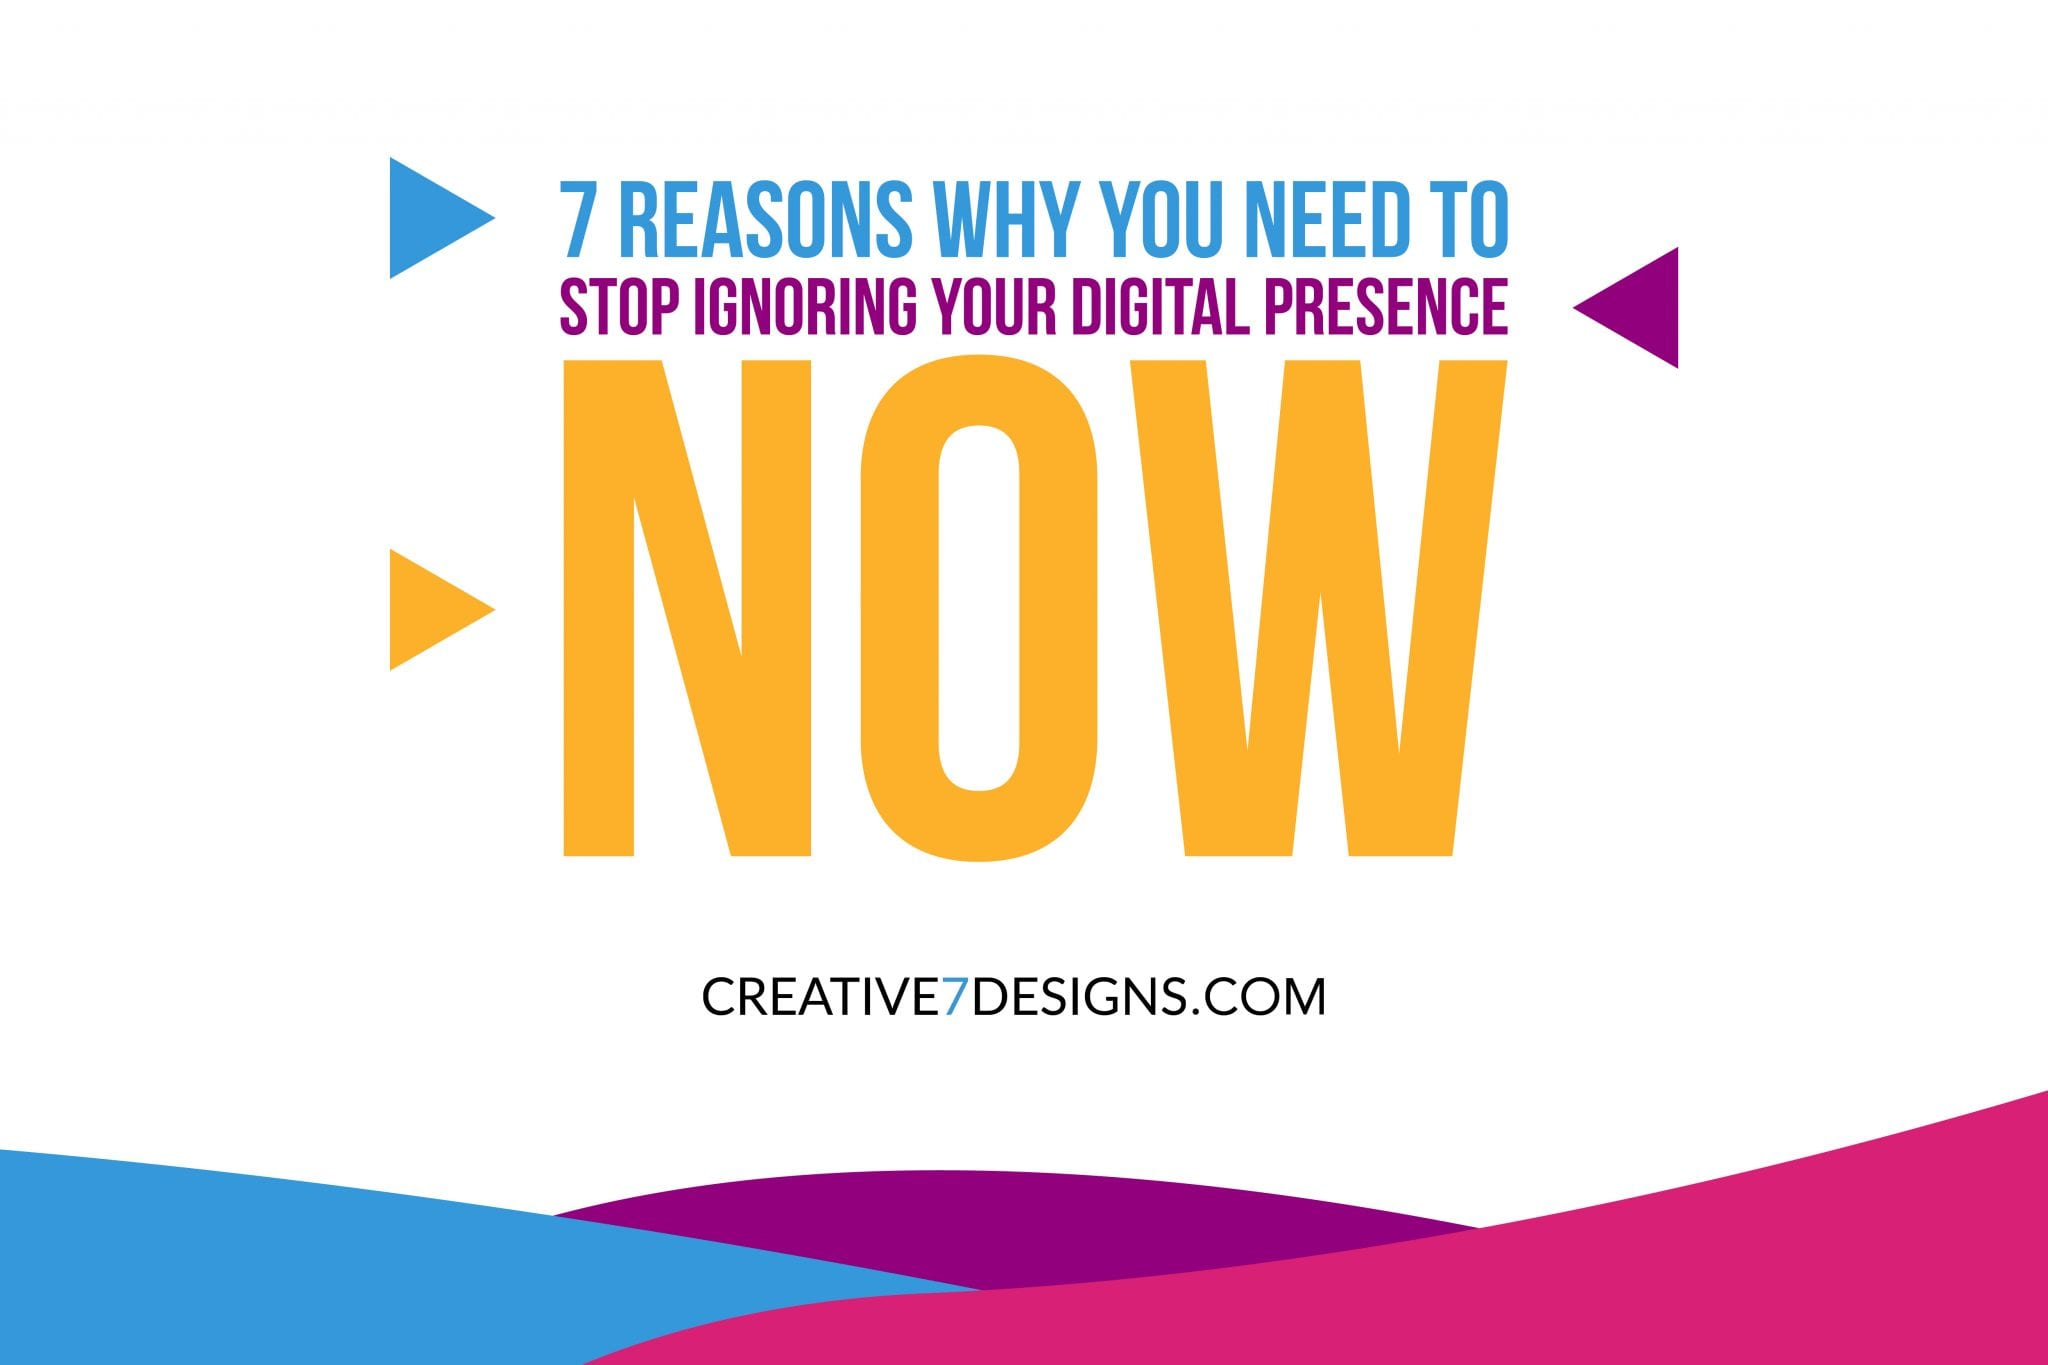 creative7designs stop ignoring your digital presence